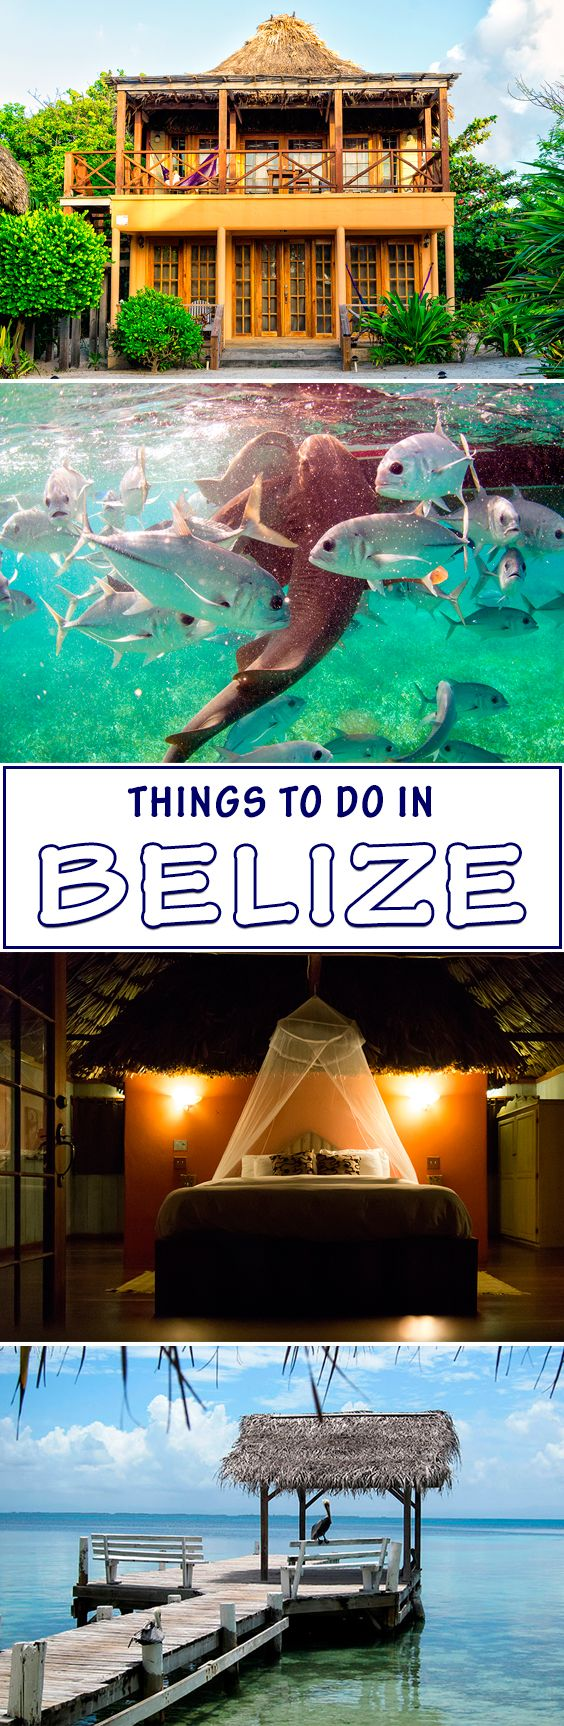 The best things to do in Belize!